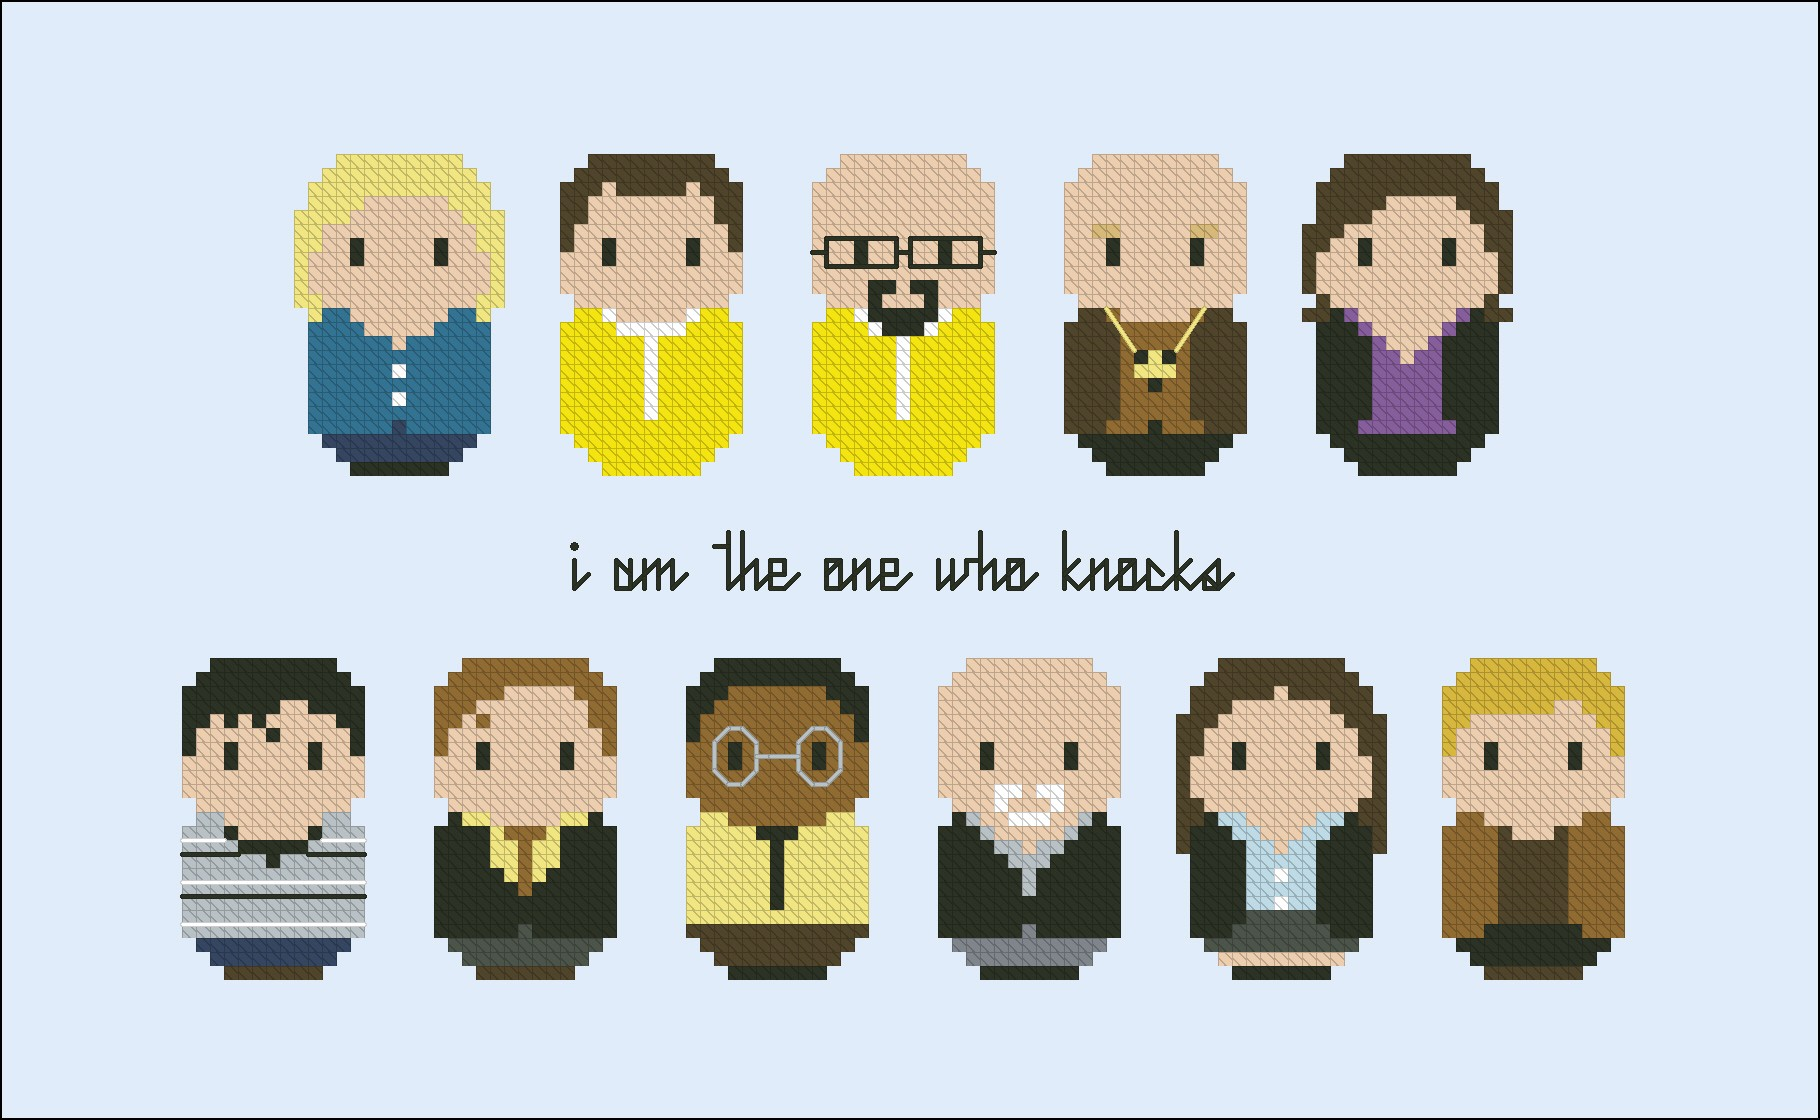 breaking bad tv series mini people cross stitch patterns products digital cross stitch. Black Bedroom Furniture Sets. Home Design Ideas